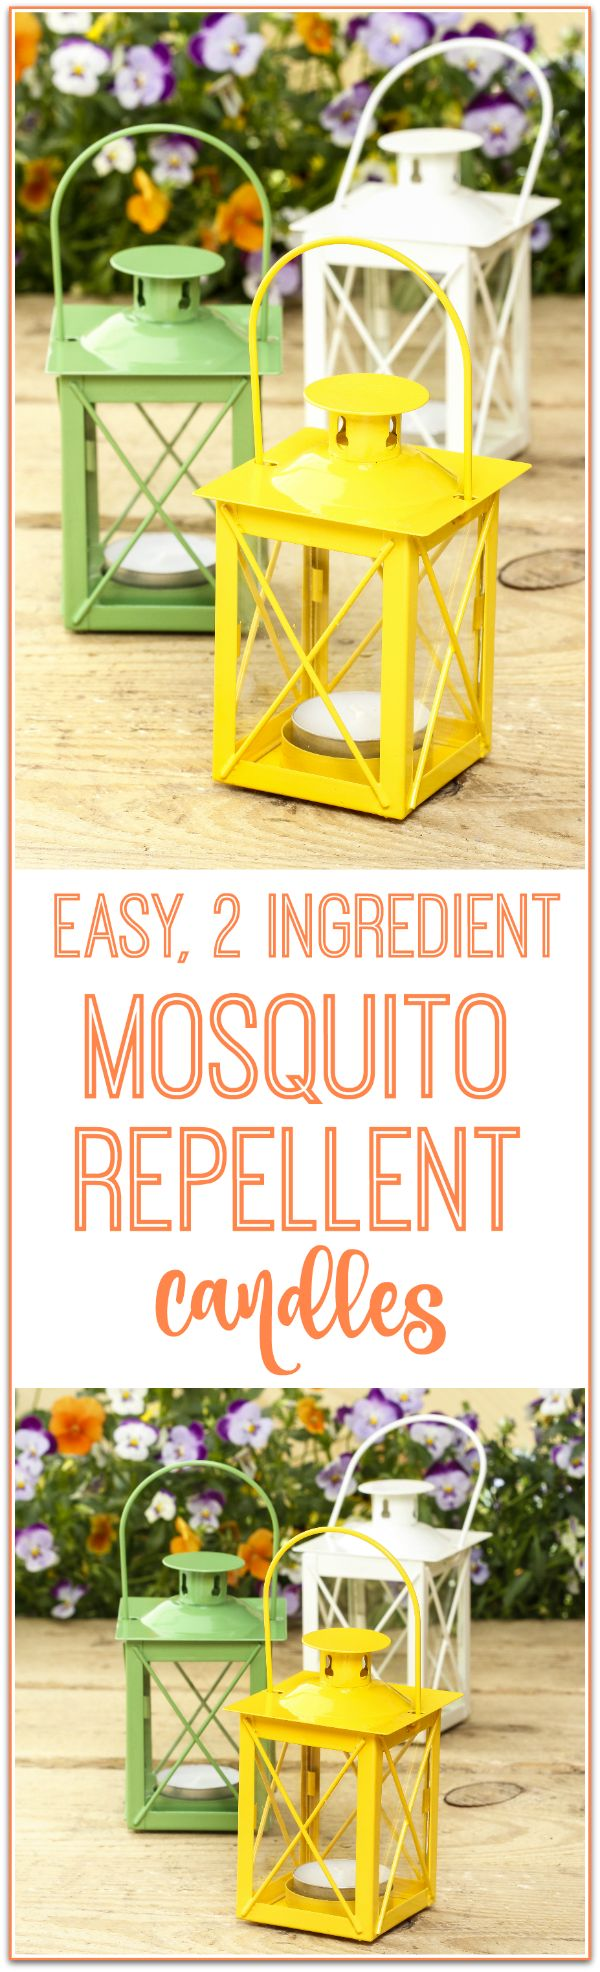 How to make easy mosquito repellent candles that repel mosquitoes, gnats and all other bugs - this is so simple and doable and all natural!!!